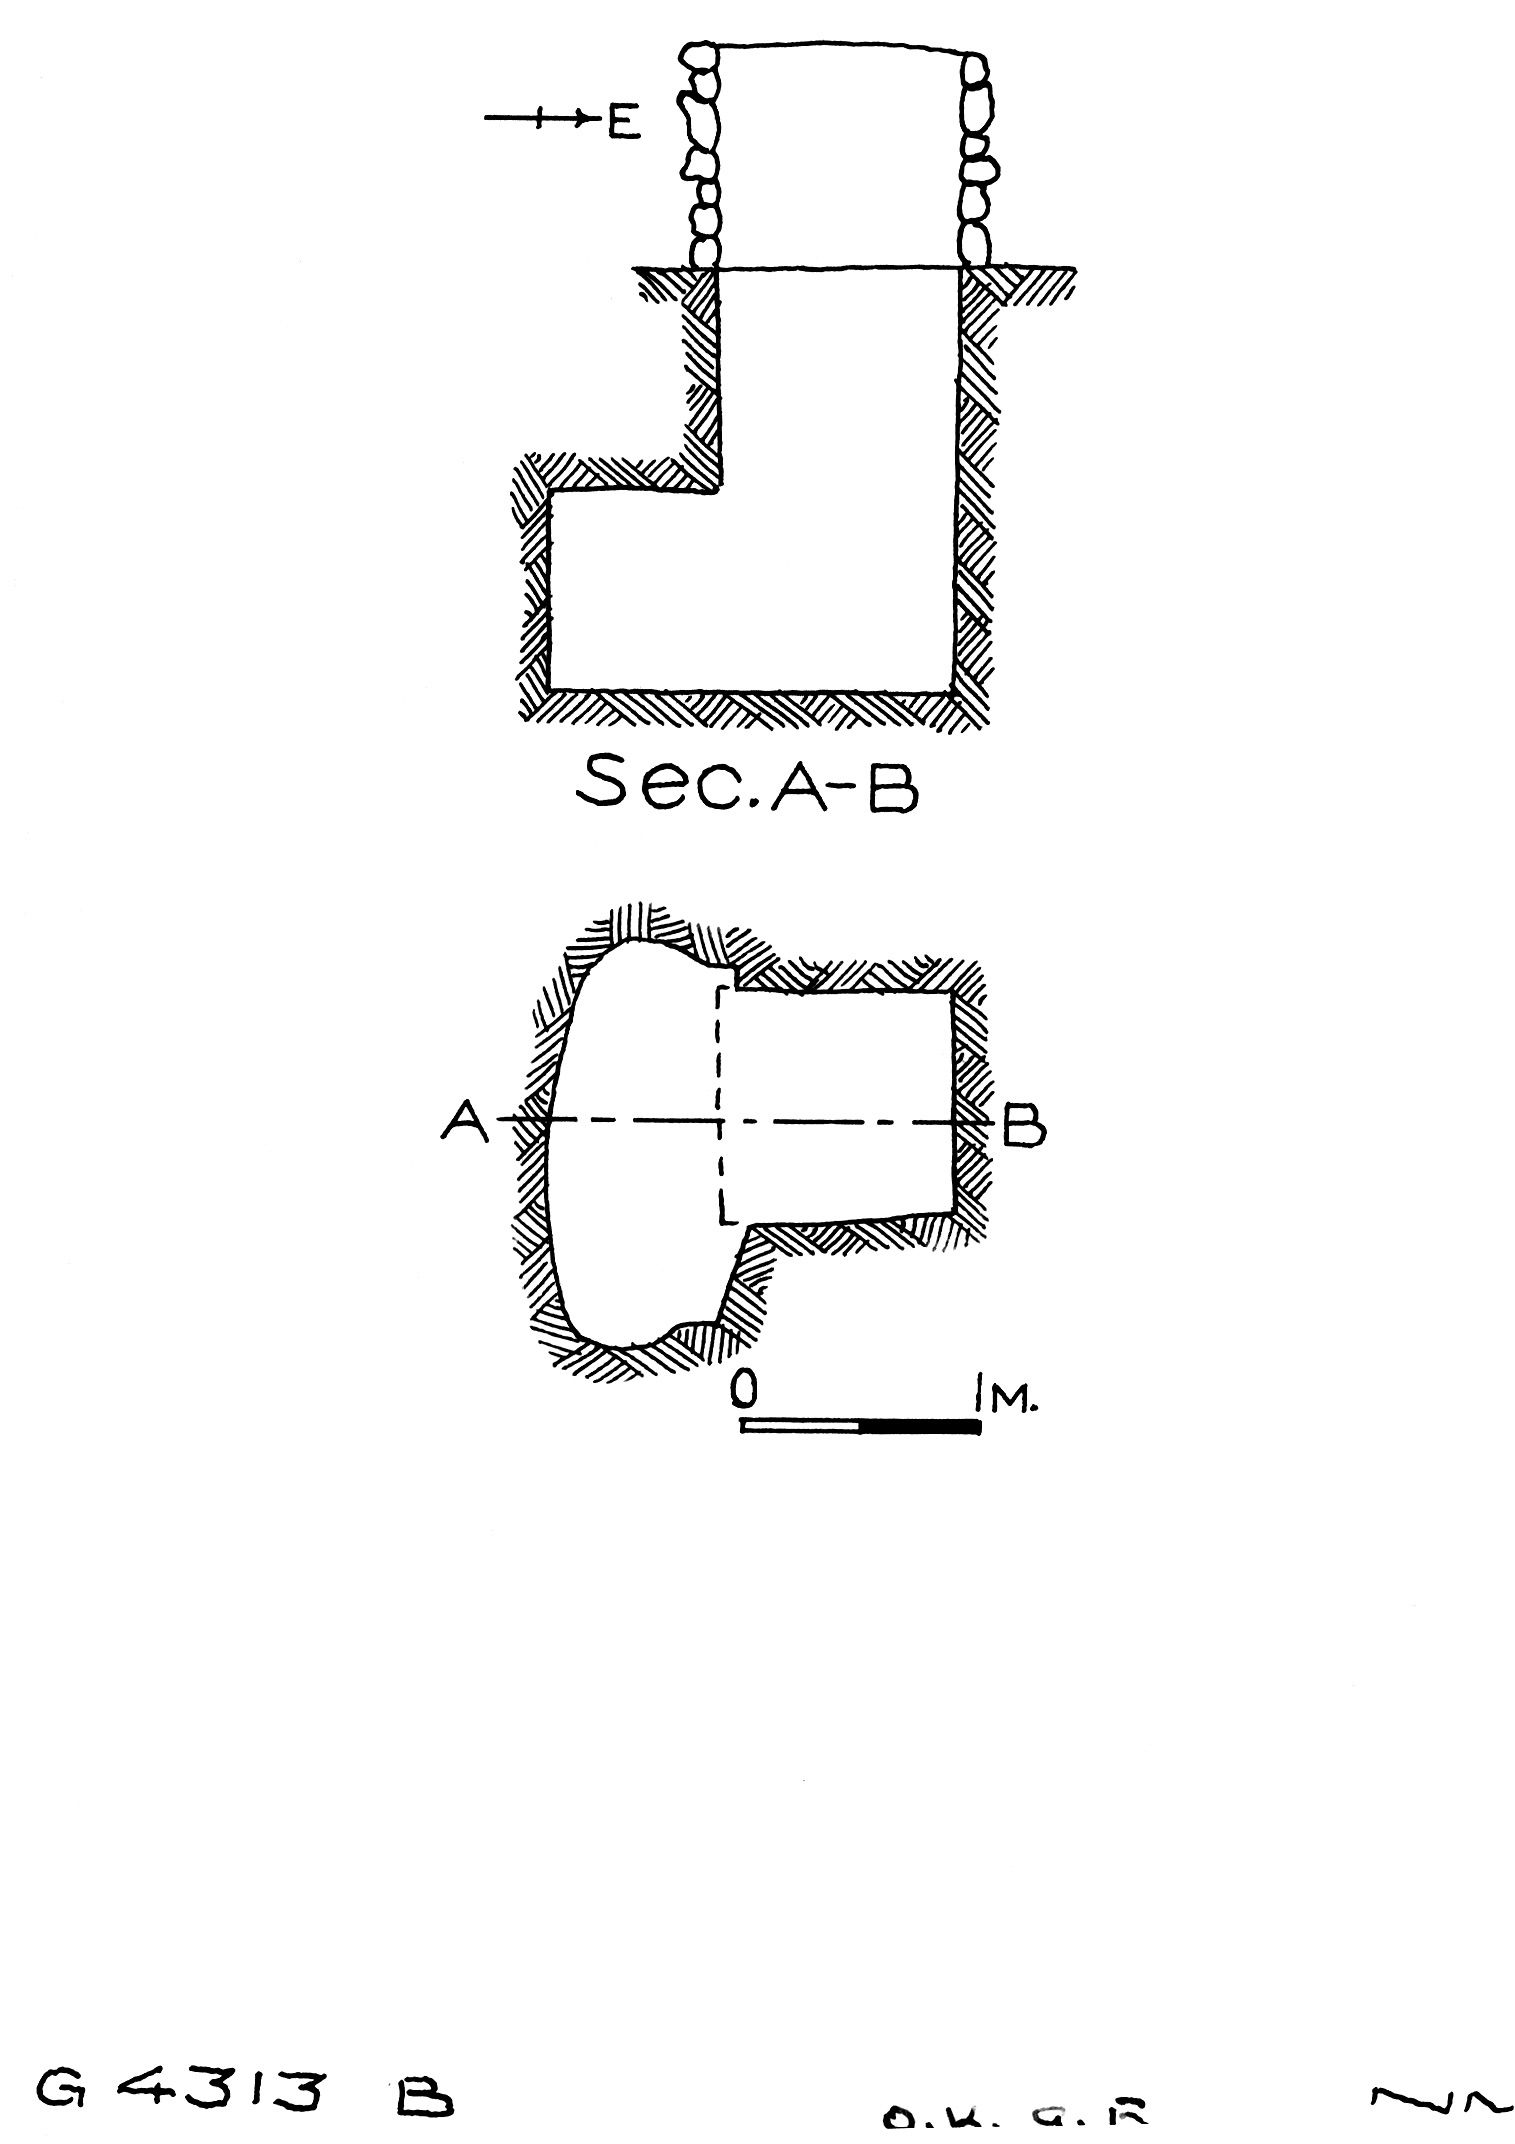 Maps and plans: G 4313, Shaft B